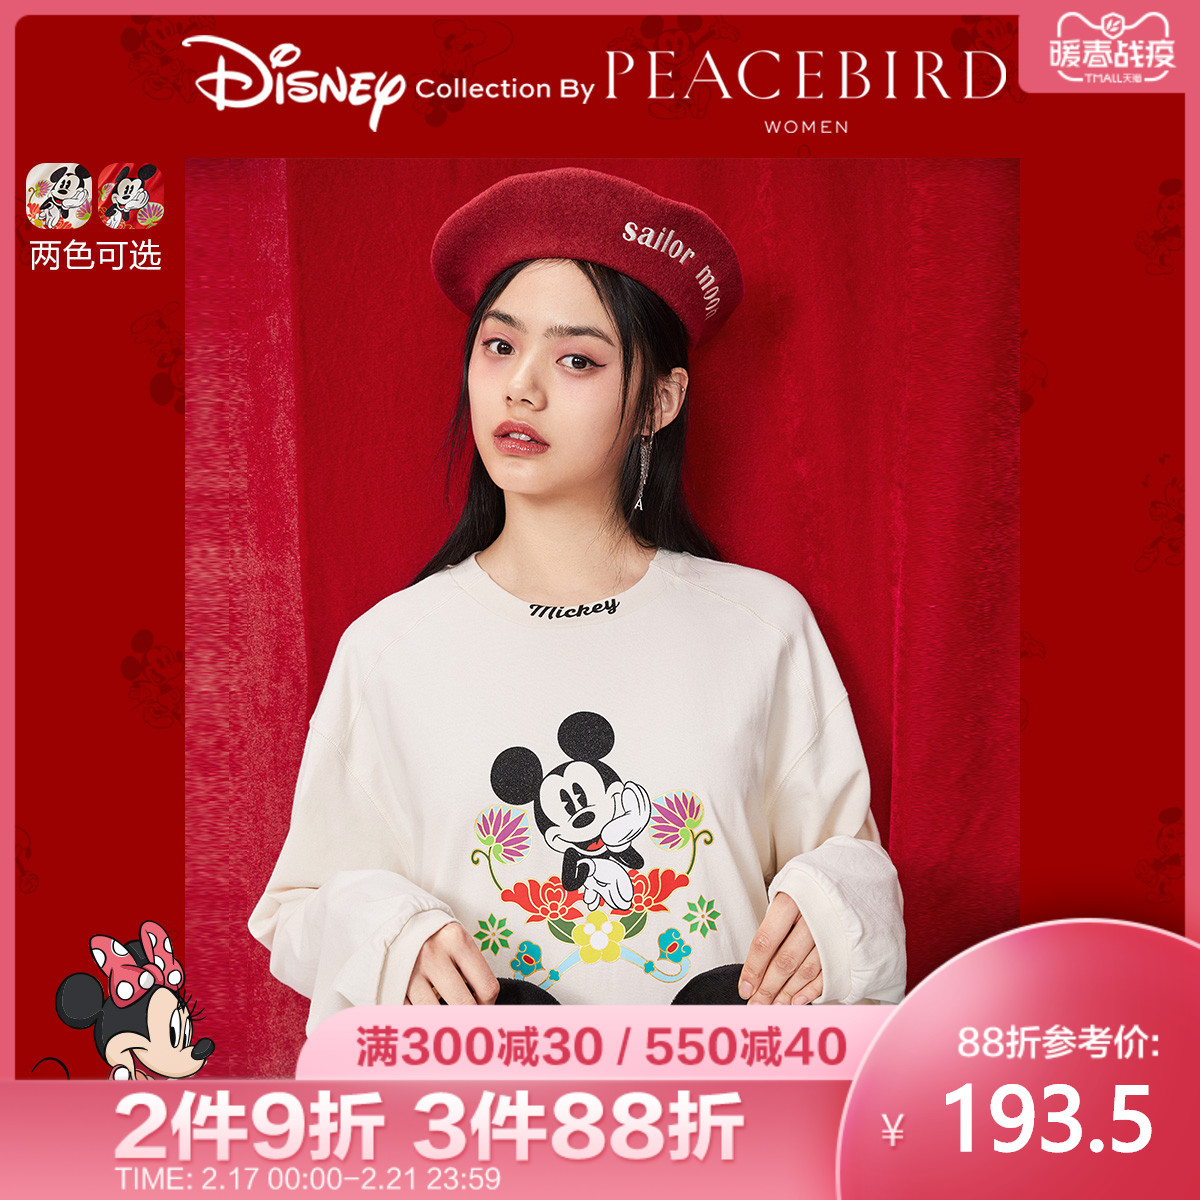 Disney Mickey and Taiping bird long sleeve T-shirt women's new printed white top in early spring 2020